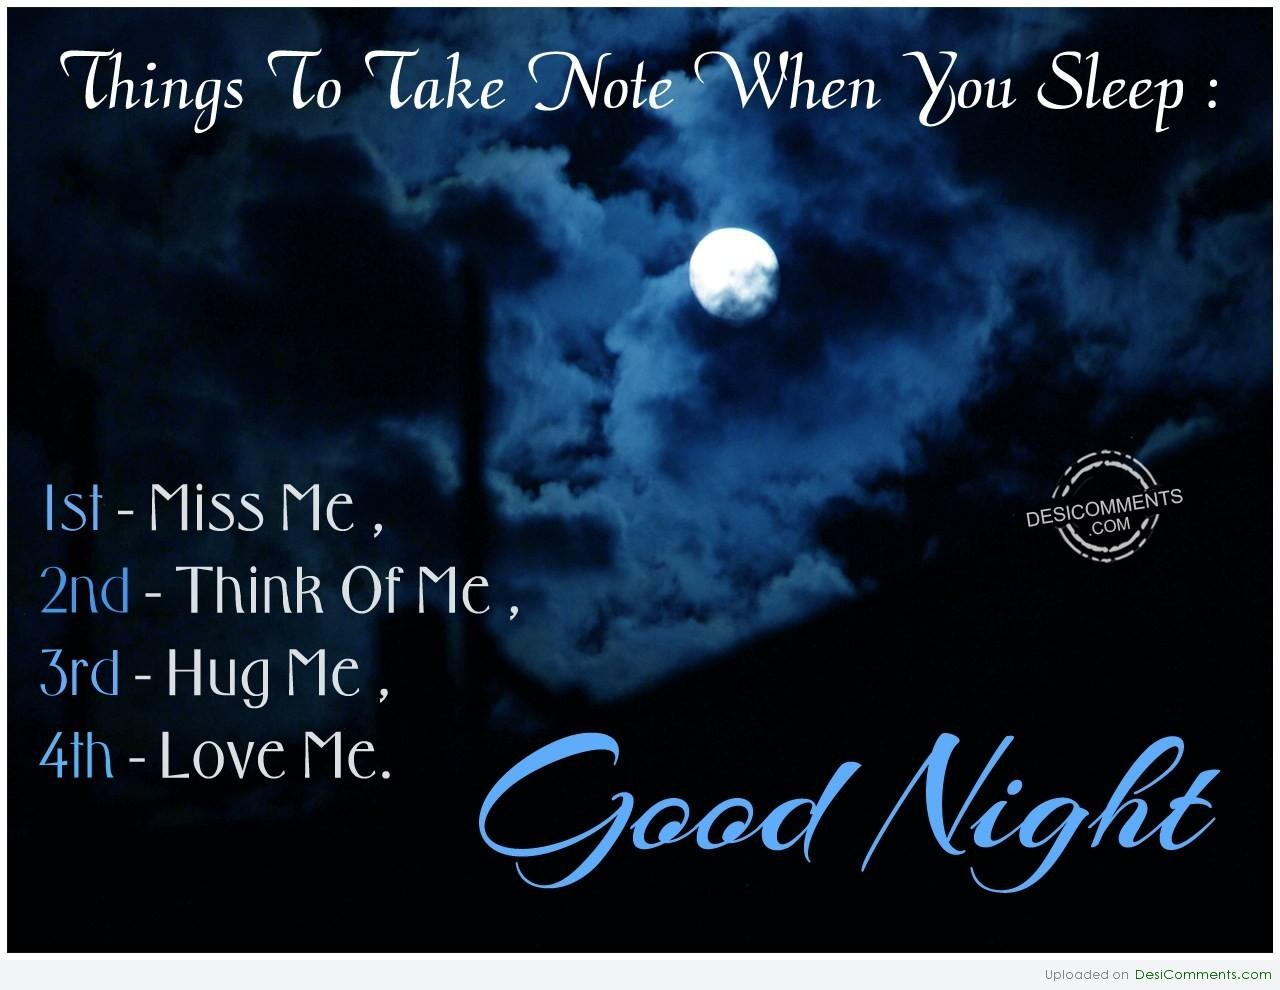 Have A Beautiful Night - DesiComments.com